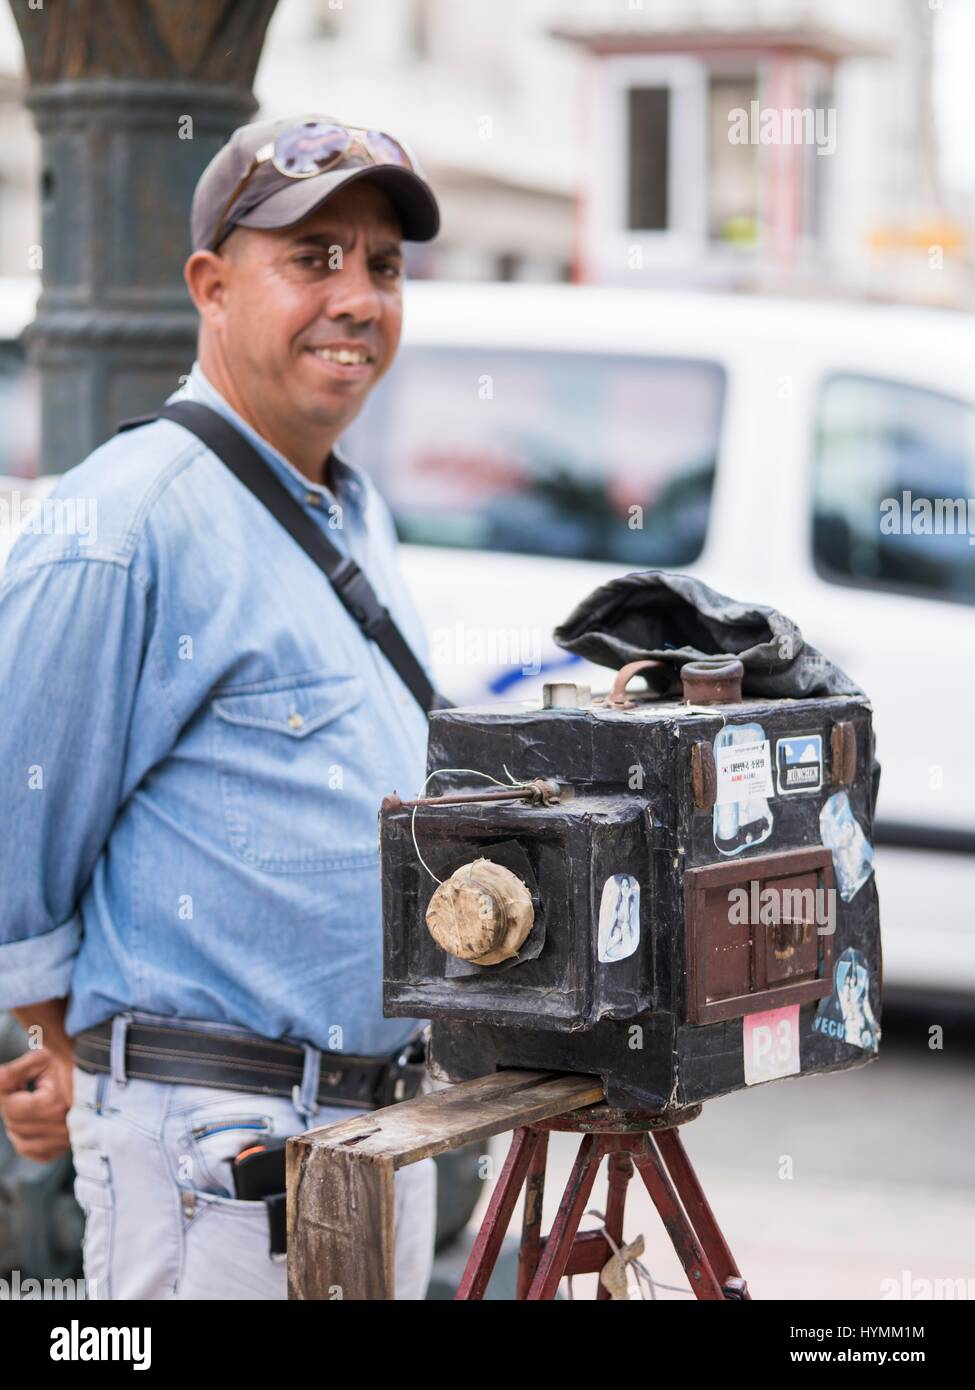 Cuban man posing in front of his handmade large format camera in Central Havana, Cuba - Stock Image